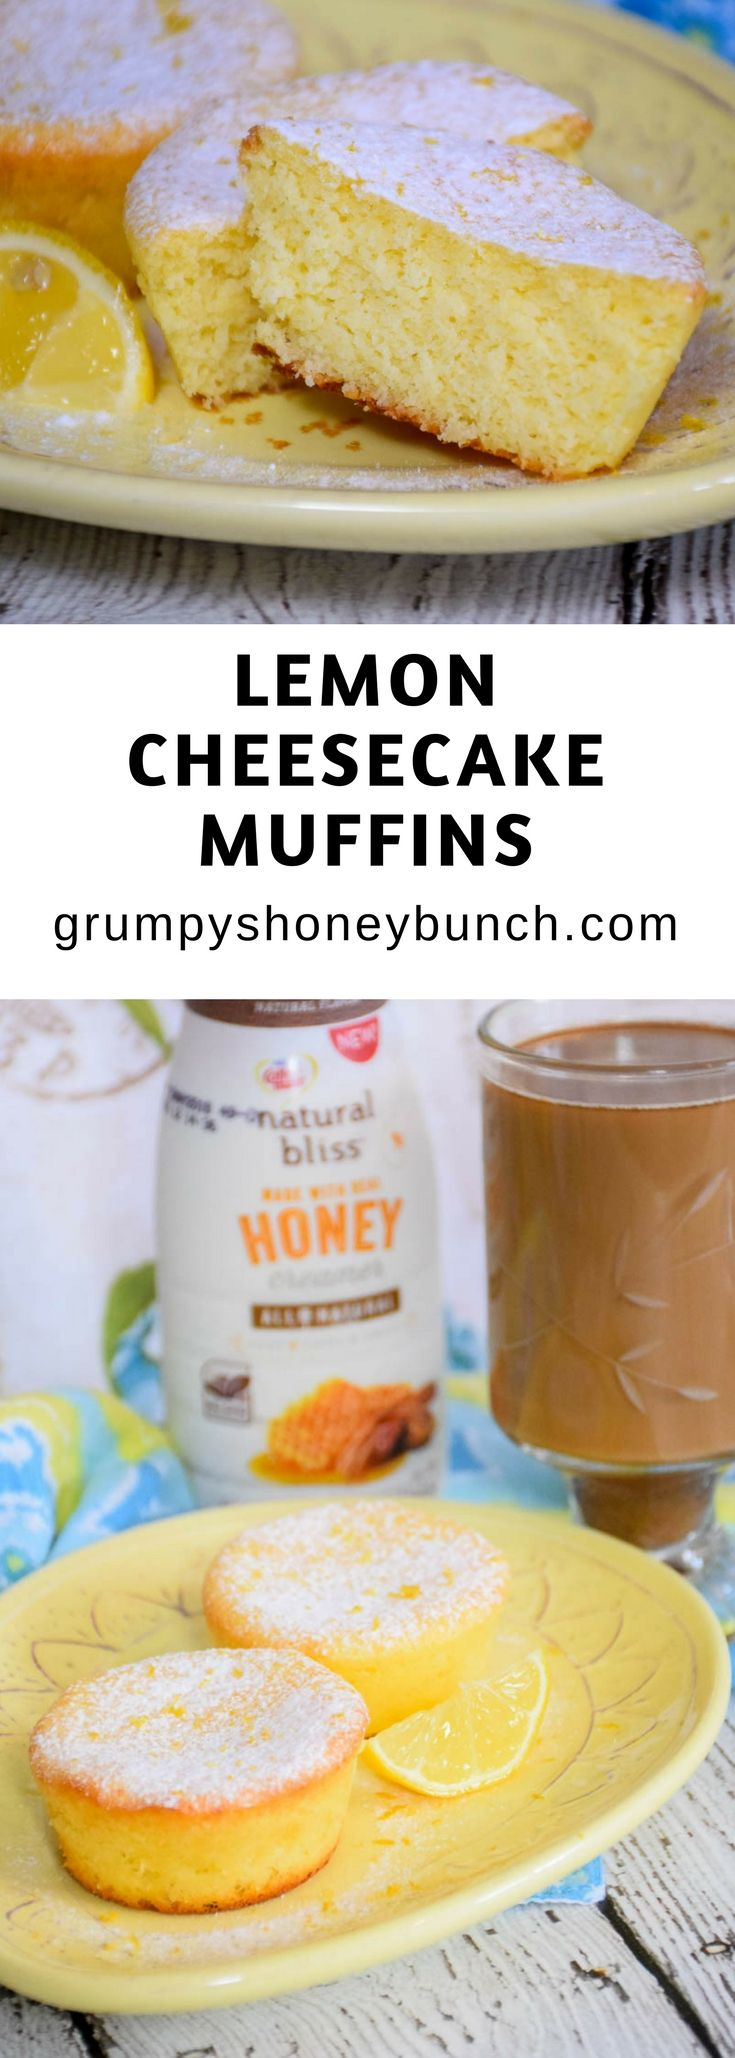 Lemon Cheesecake Muffins have that bright lemon flavor, are finely textured and lightweight, and completely delicious! Perfect with just a sprinkling of powdered sugar on top,  these muffins make the perfect accompanyment to celebrate spring's moments along with your hot cup of coffee and Coffee-mate® natural bliss® Honey creamer! #ad #FlavorYourSpring https://ooh.li/4e8df56